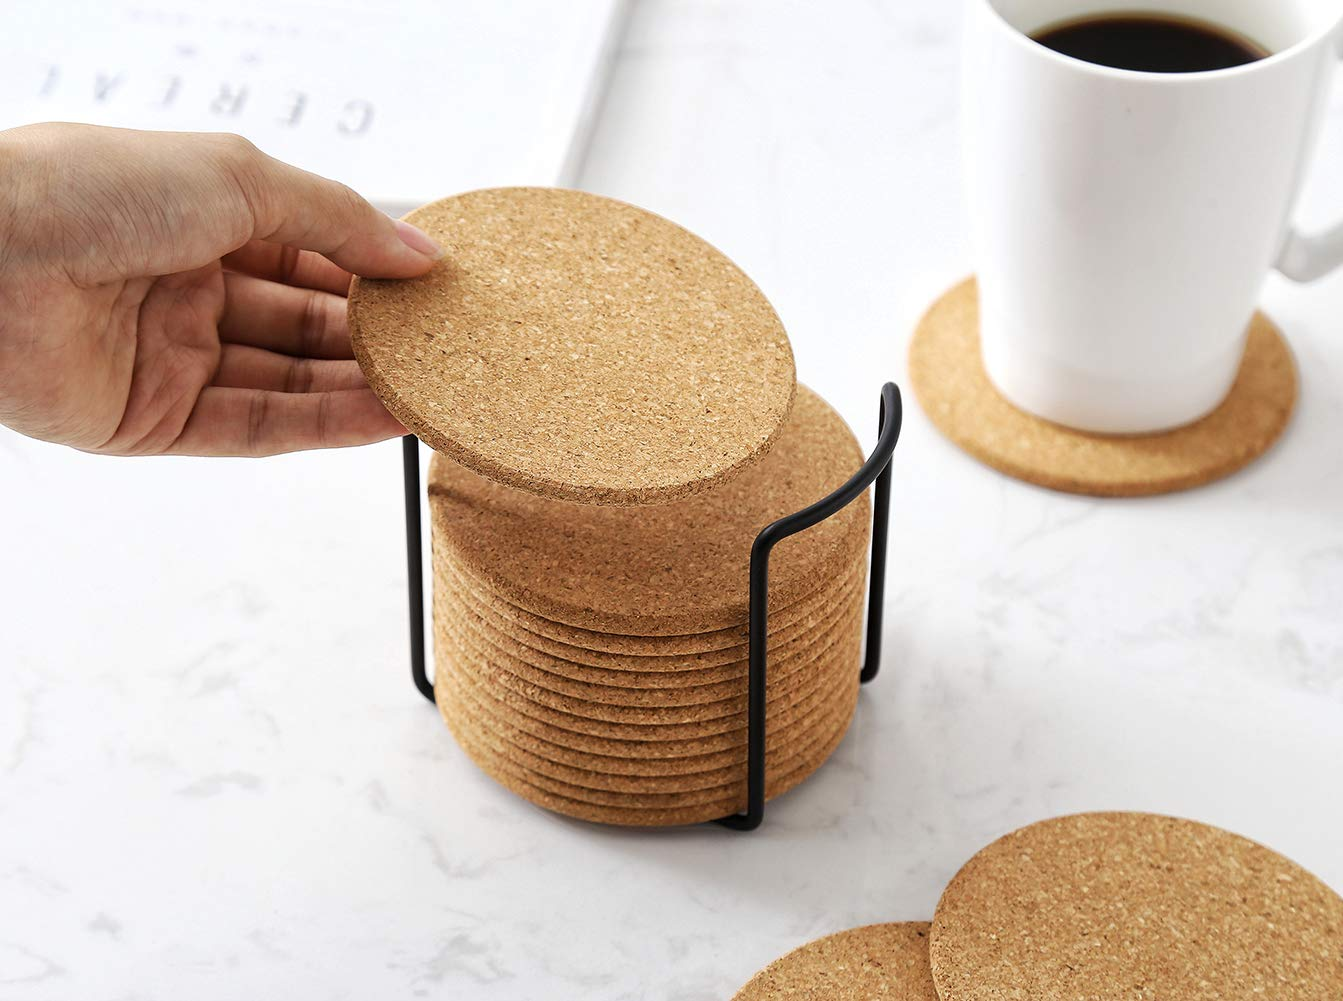 Reusable For Cold Drinks Cork Coasters With Metal Holder Storage 4 Diameter 1//5 Thick Round Edge Cups /& Mugs,Set of 16 GREAT USA STORE Wine Glasses Heat-Resistant